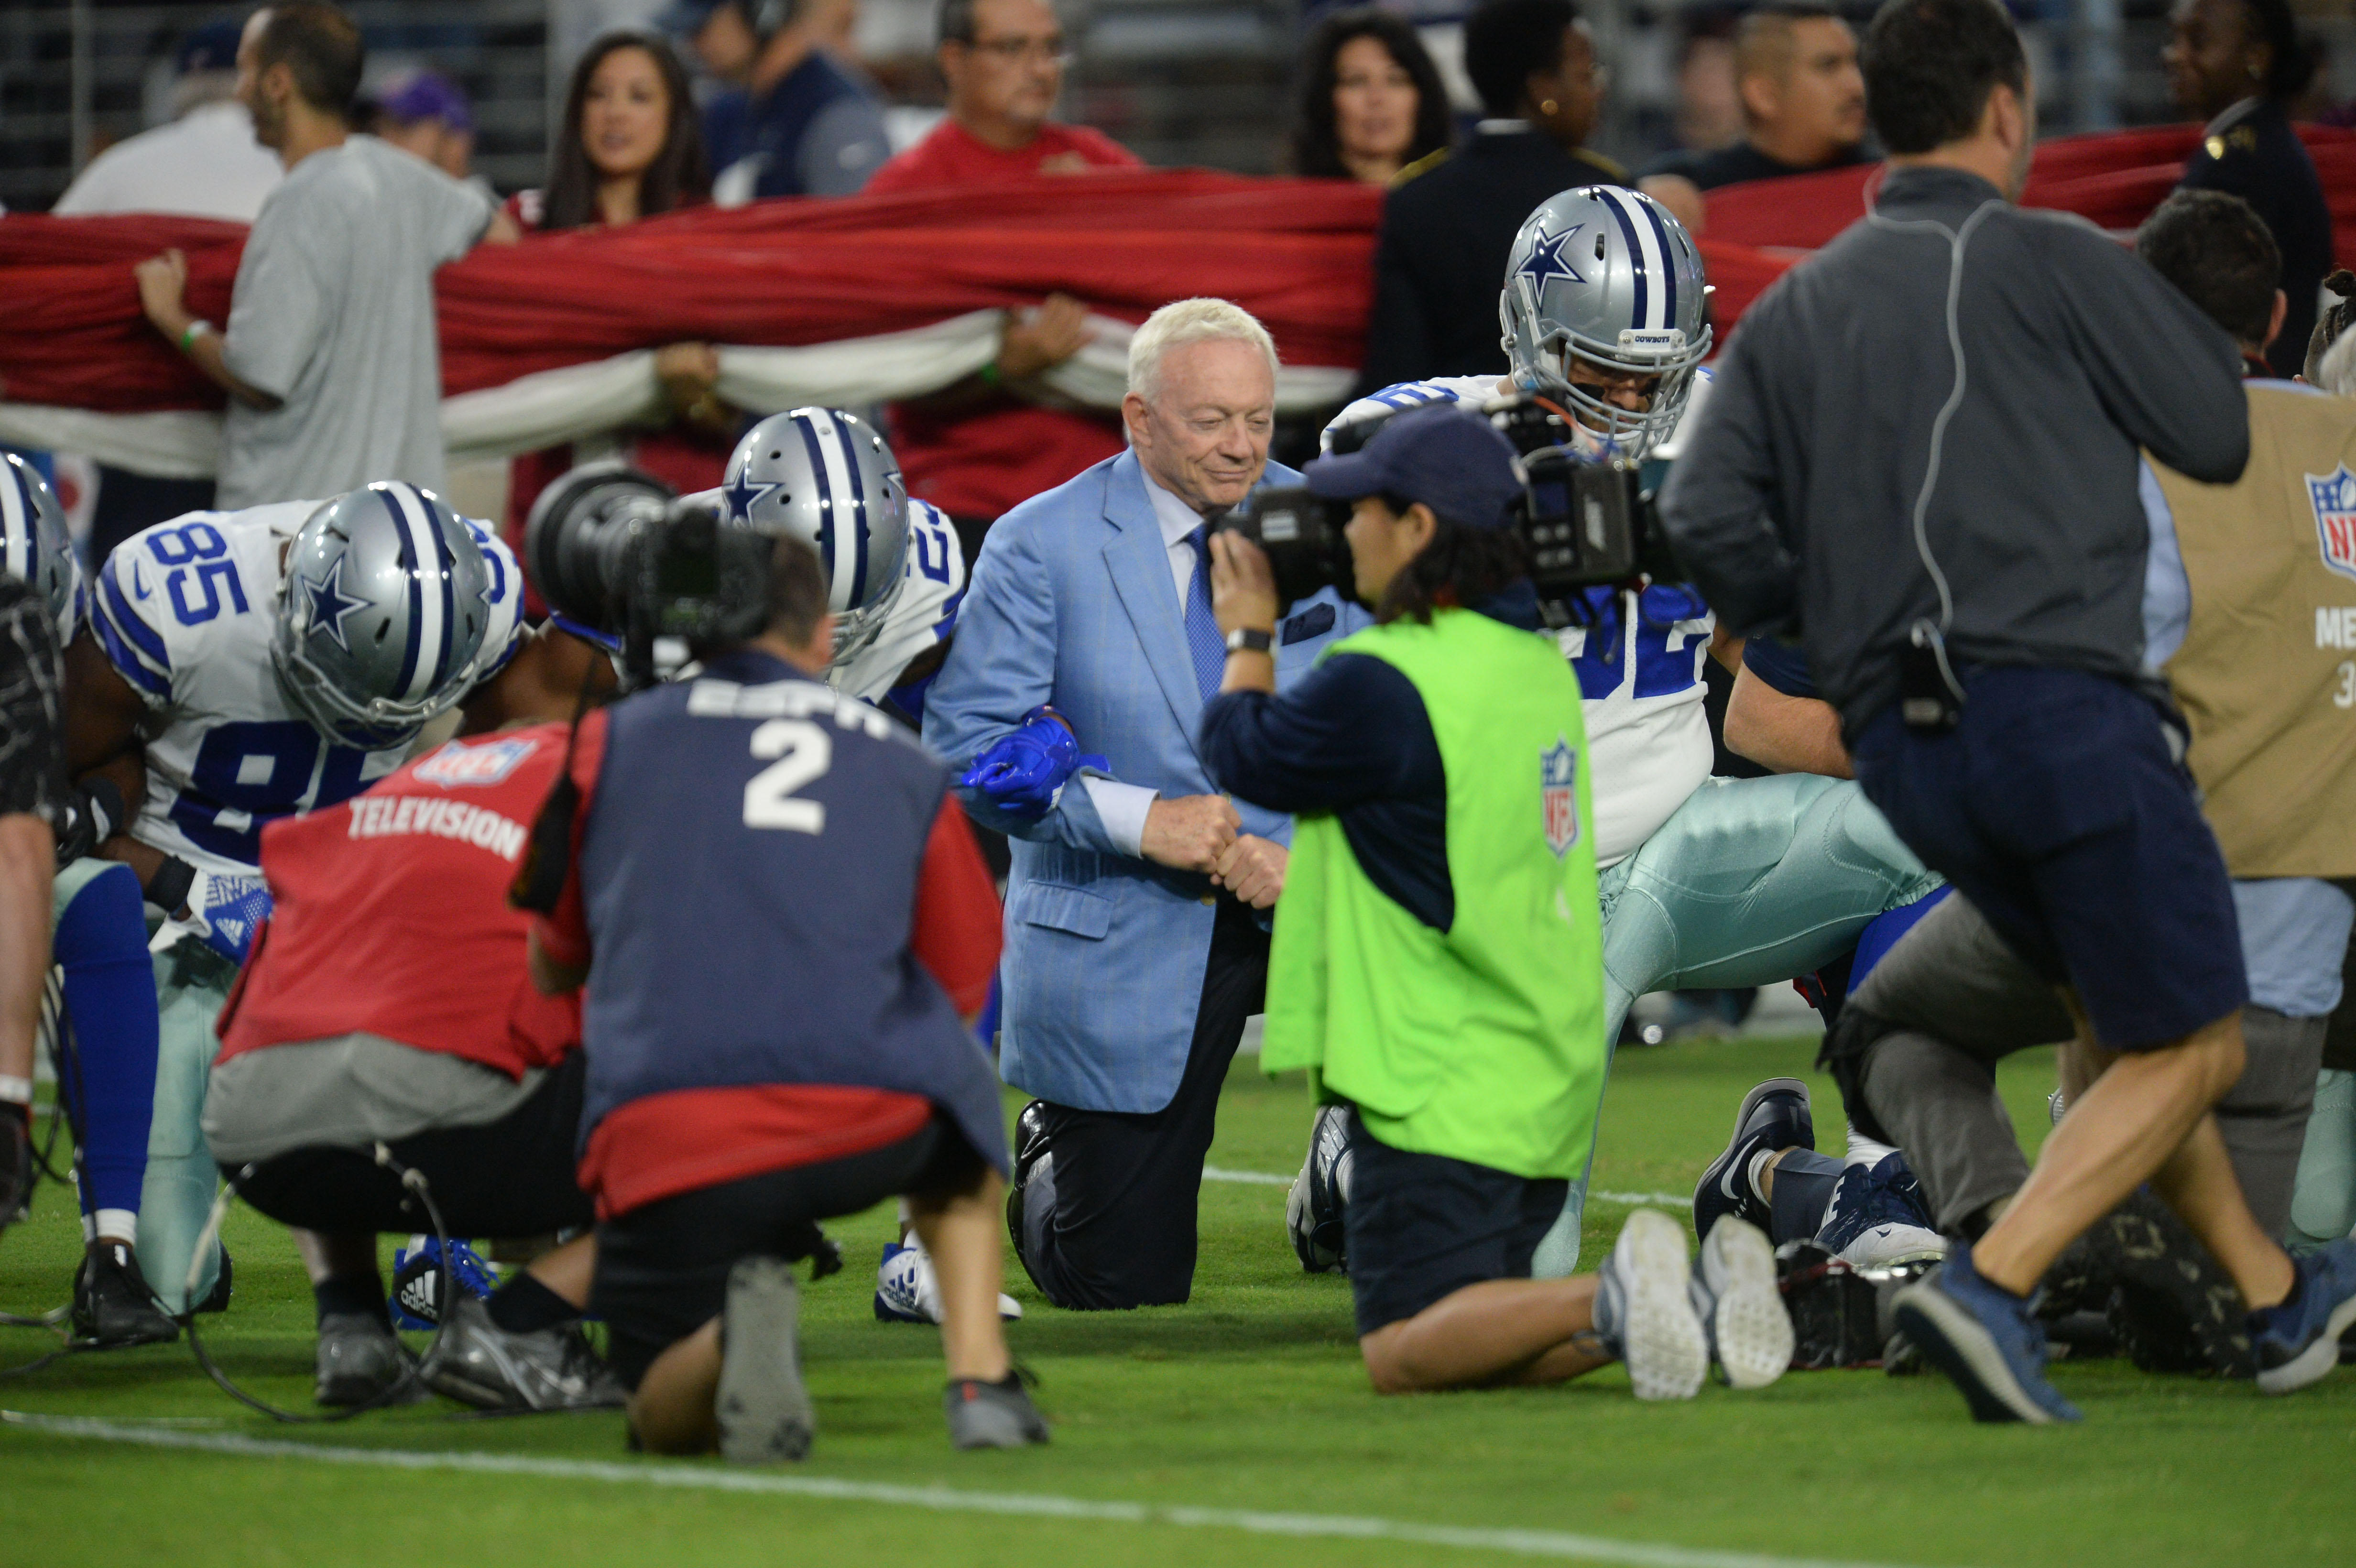 Cowboys owner Jerry Jones kneels with players before national anthem